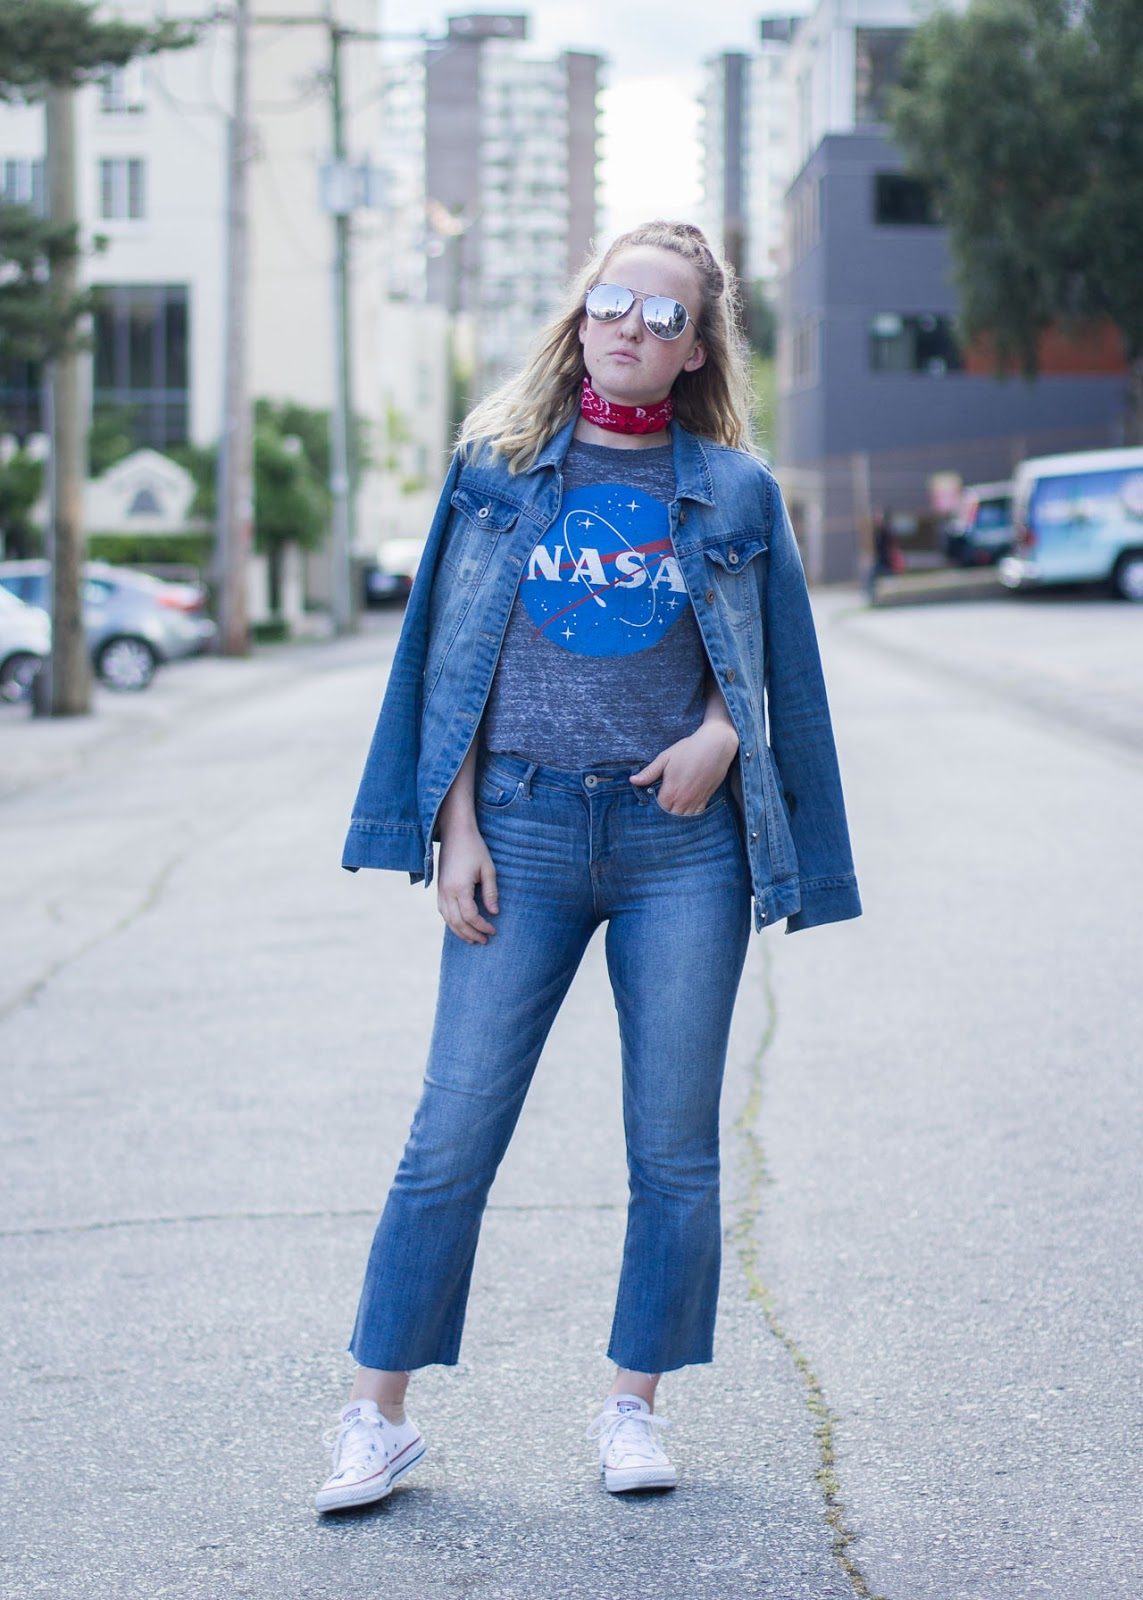 Vancouver Fashion And Personal Style Blog: NASA